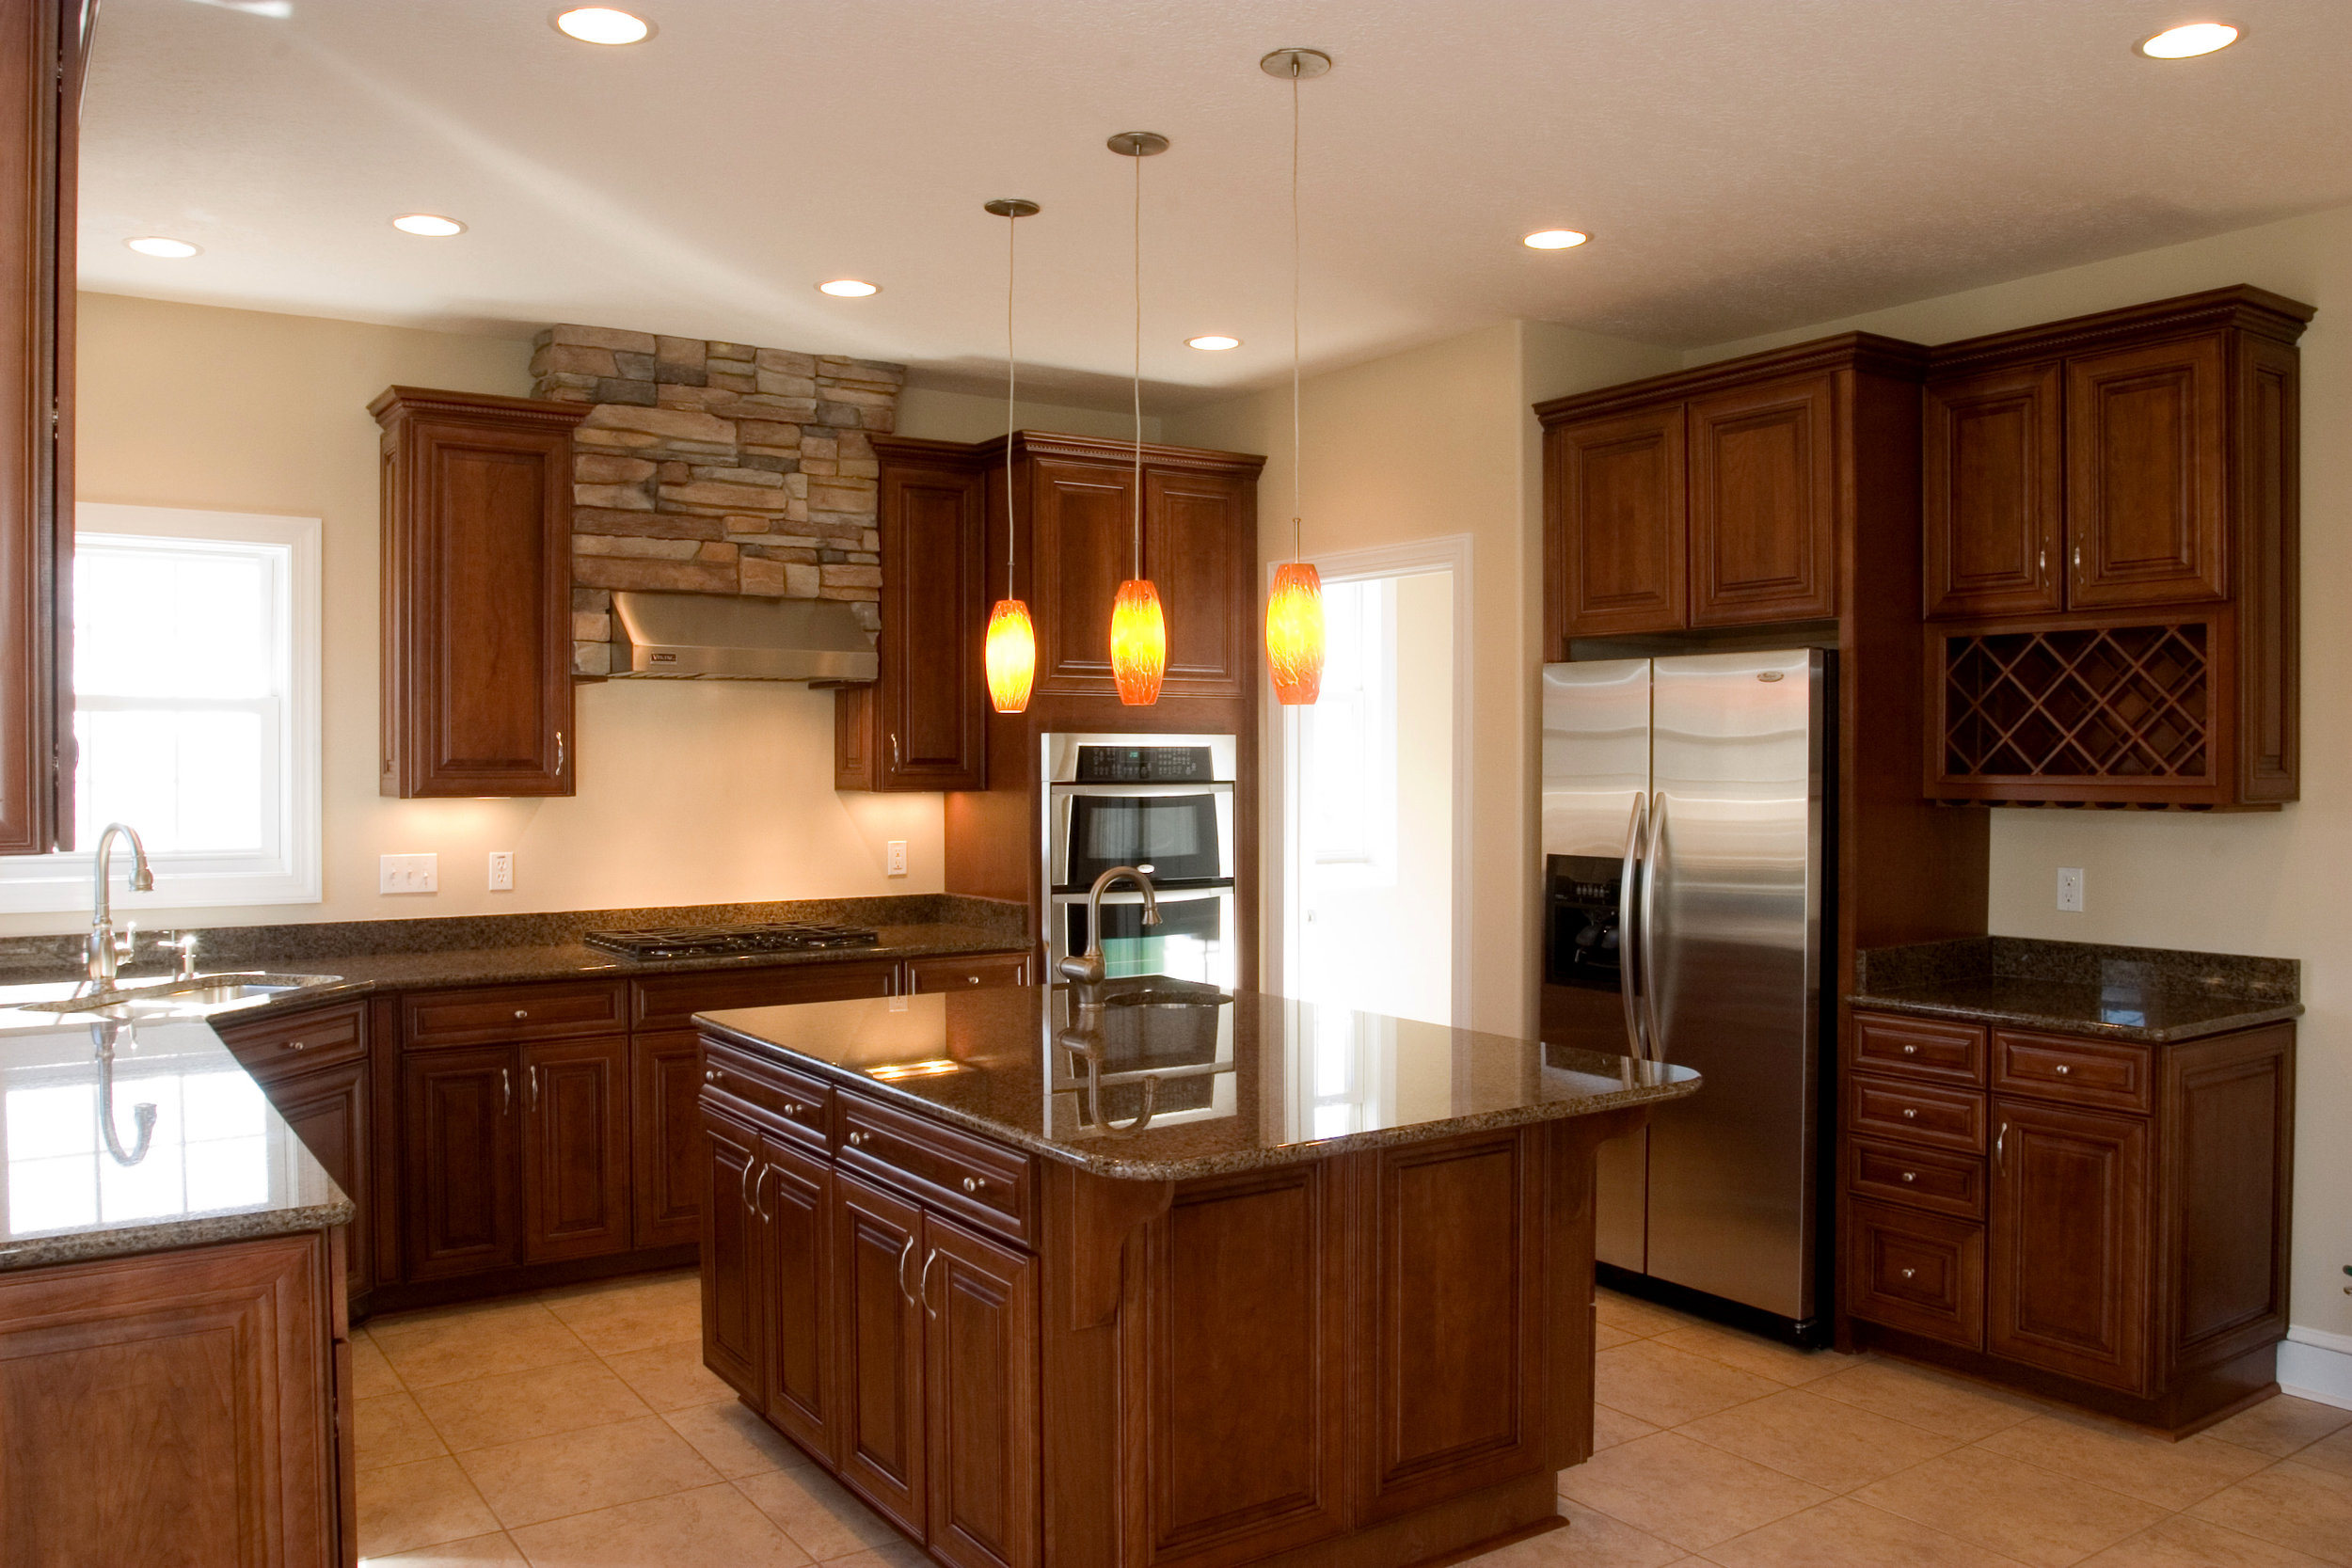 04 Mountain Side Drive Kitchen 1.jpg